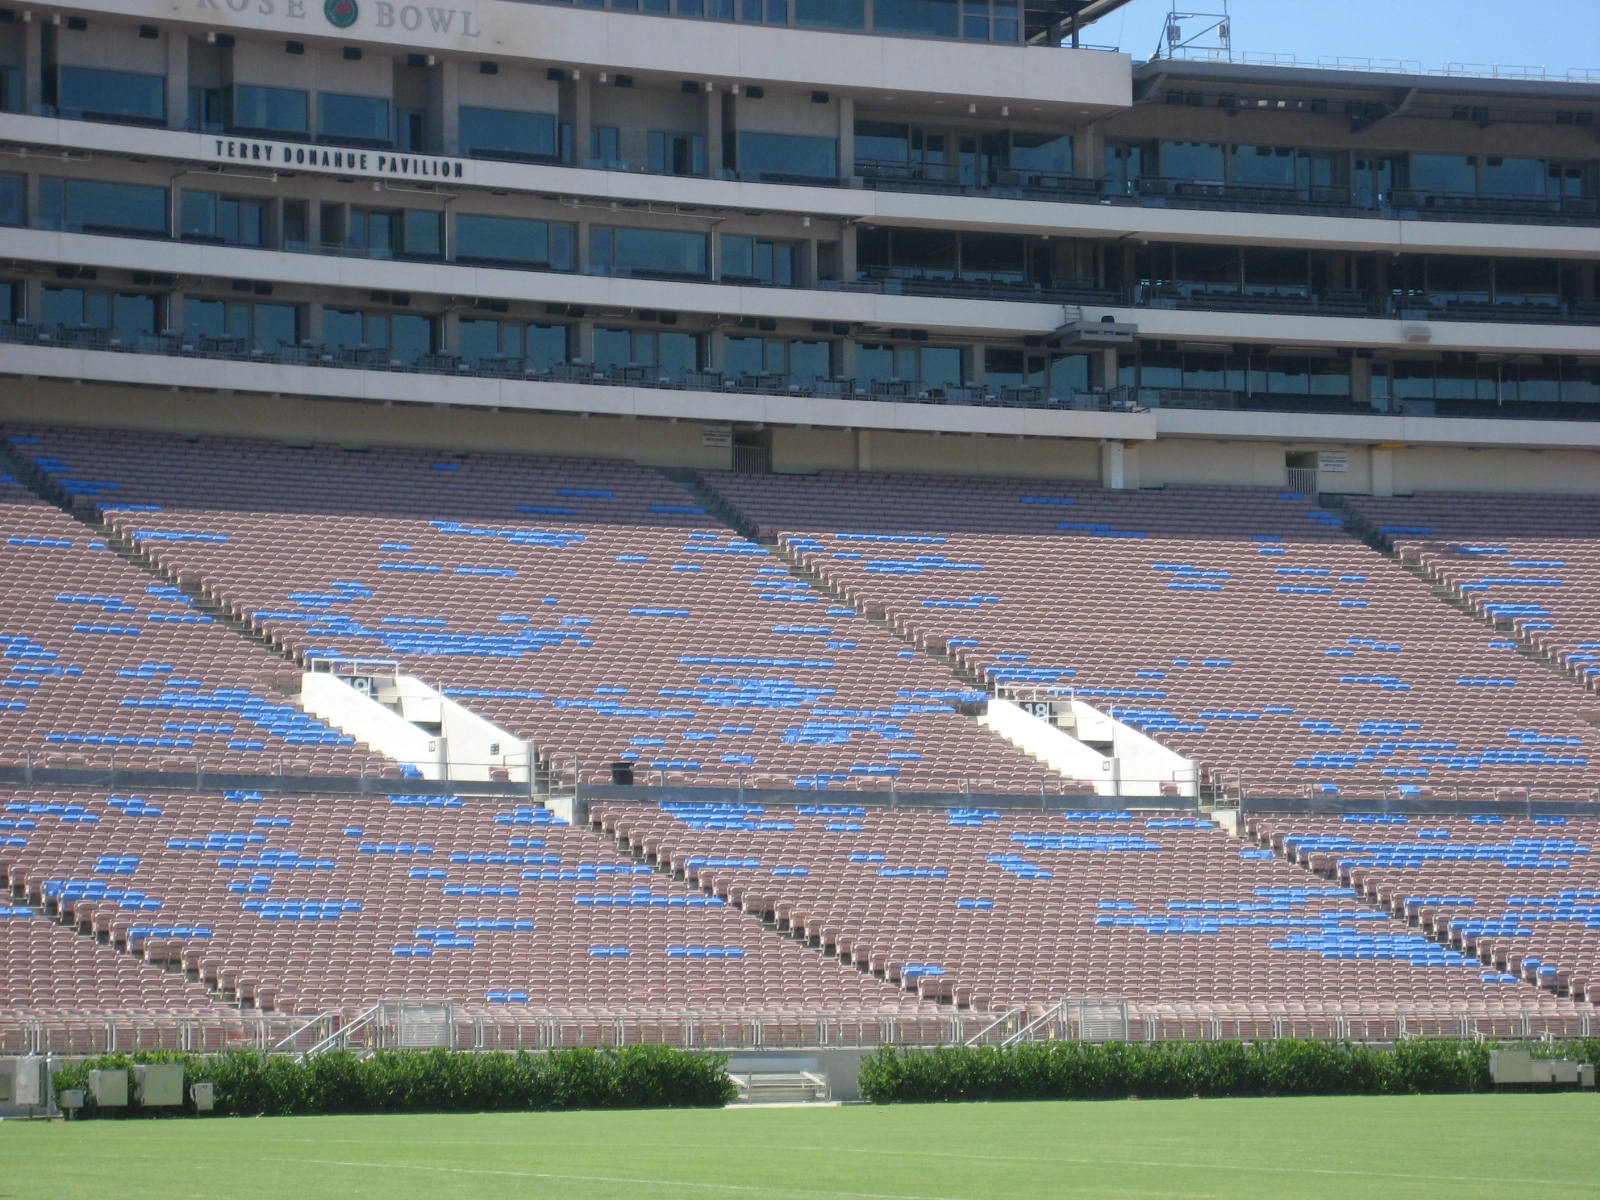 Rose Bowl Stadium Ucla Seating Guide